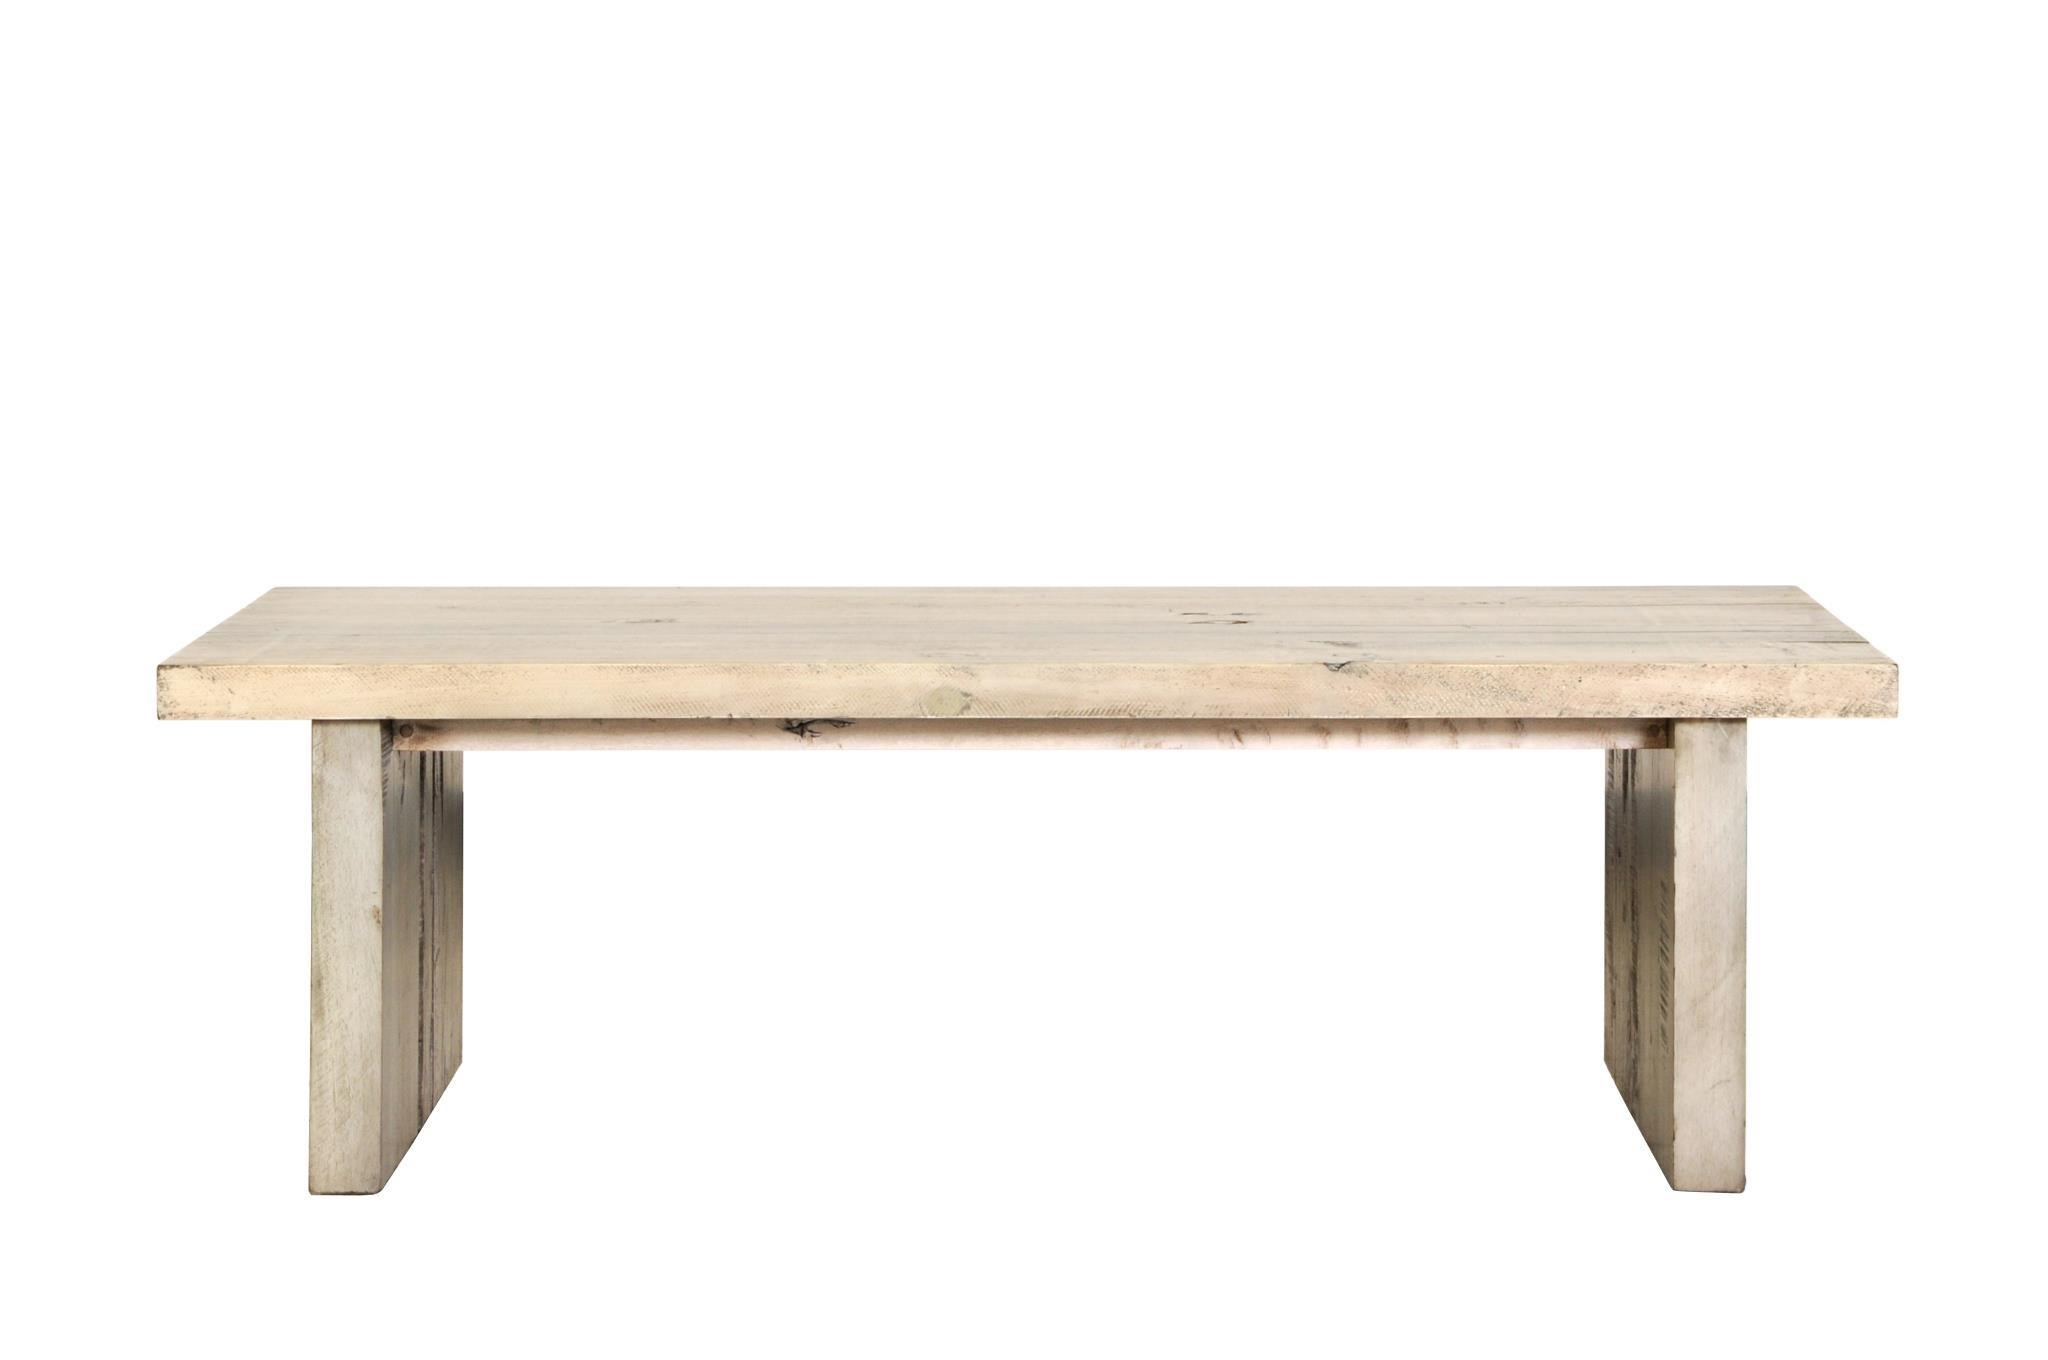 Renewal Coffee Table by Napa Furniture Designs at Red Knot